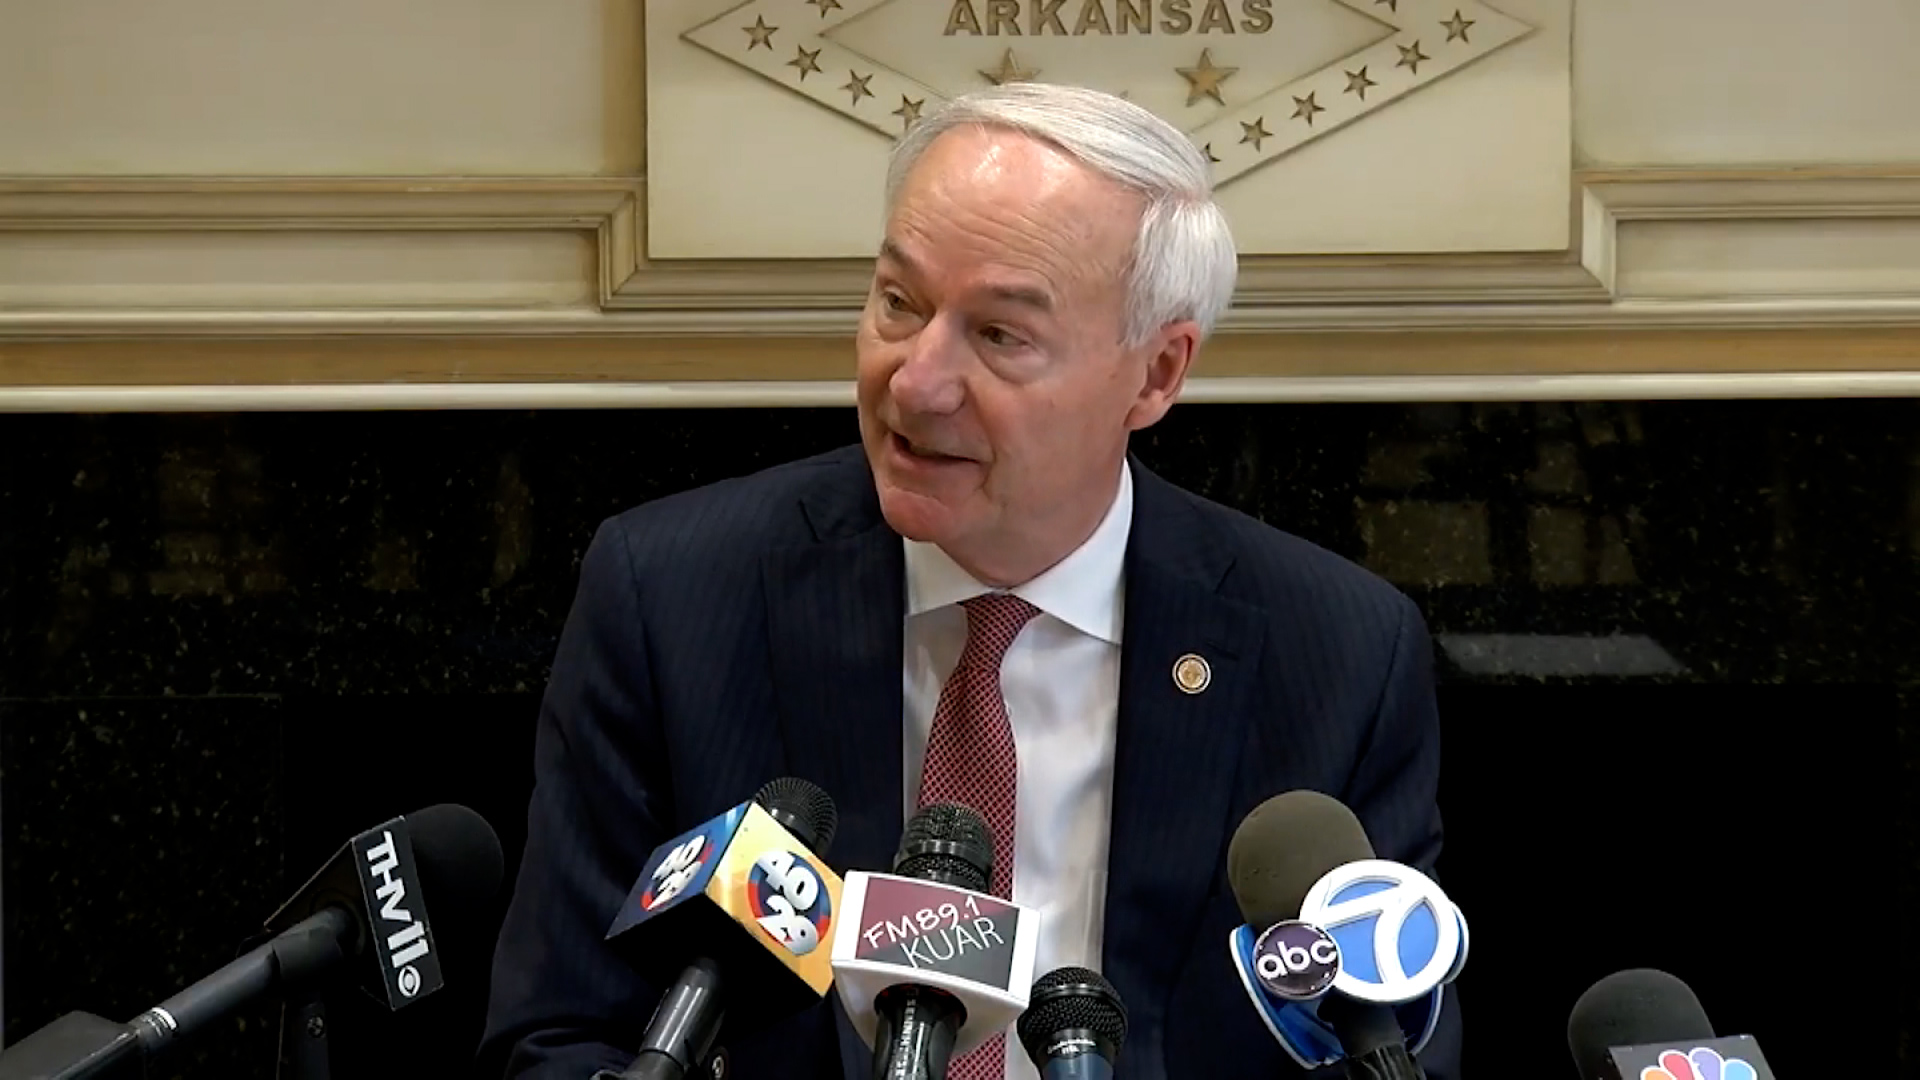 Arkansas bills that restrict voting access head to governor's desk